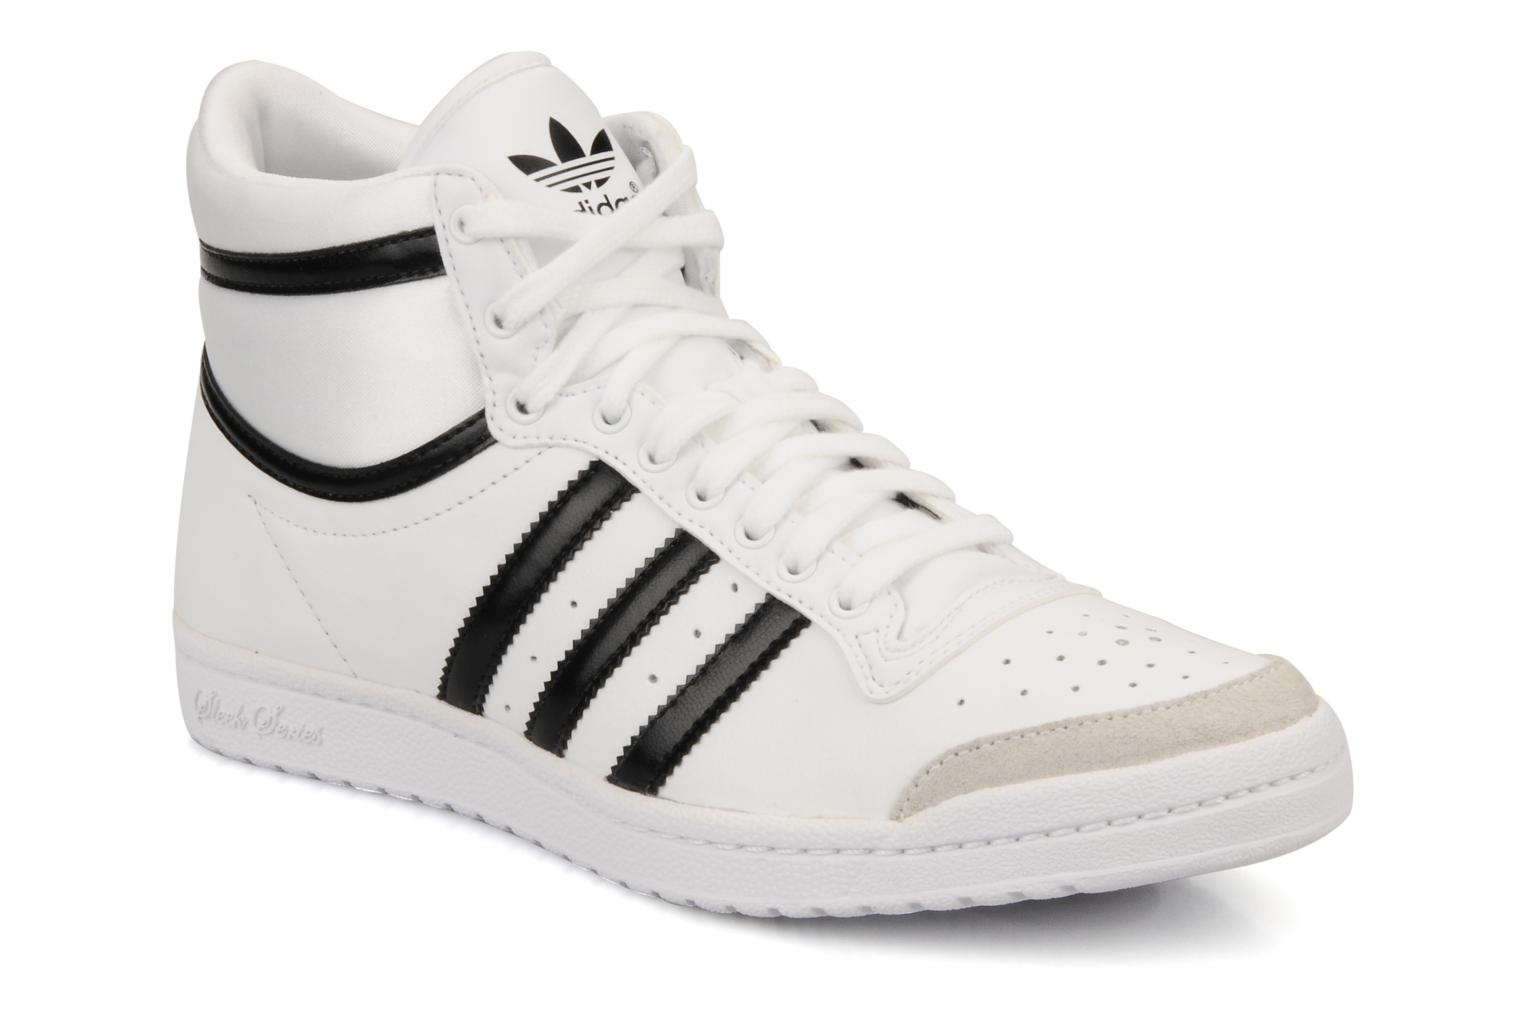 adidas top ten hi sleek grise,adidas top ten hi sleek femme